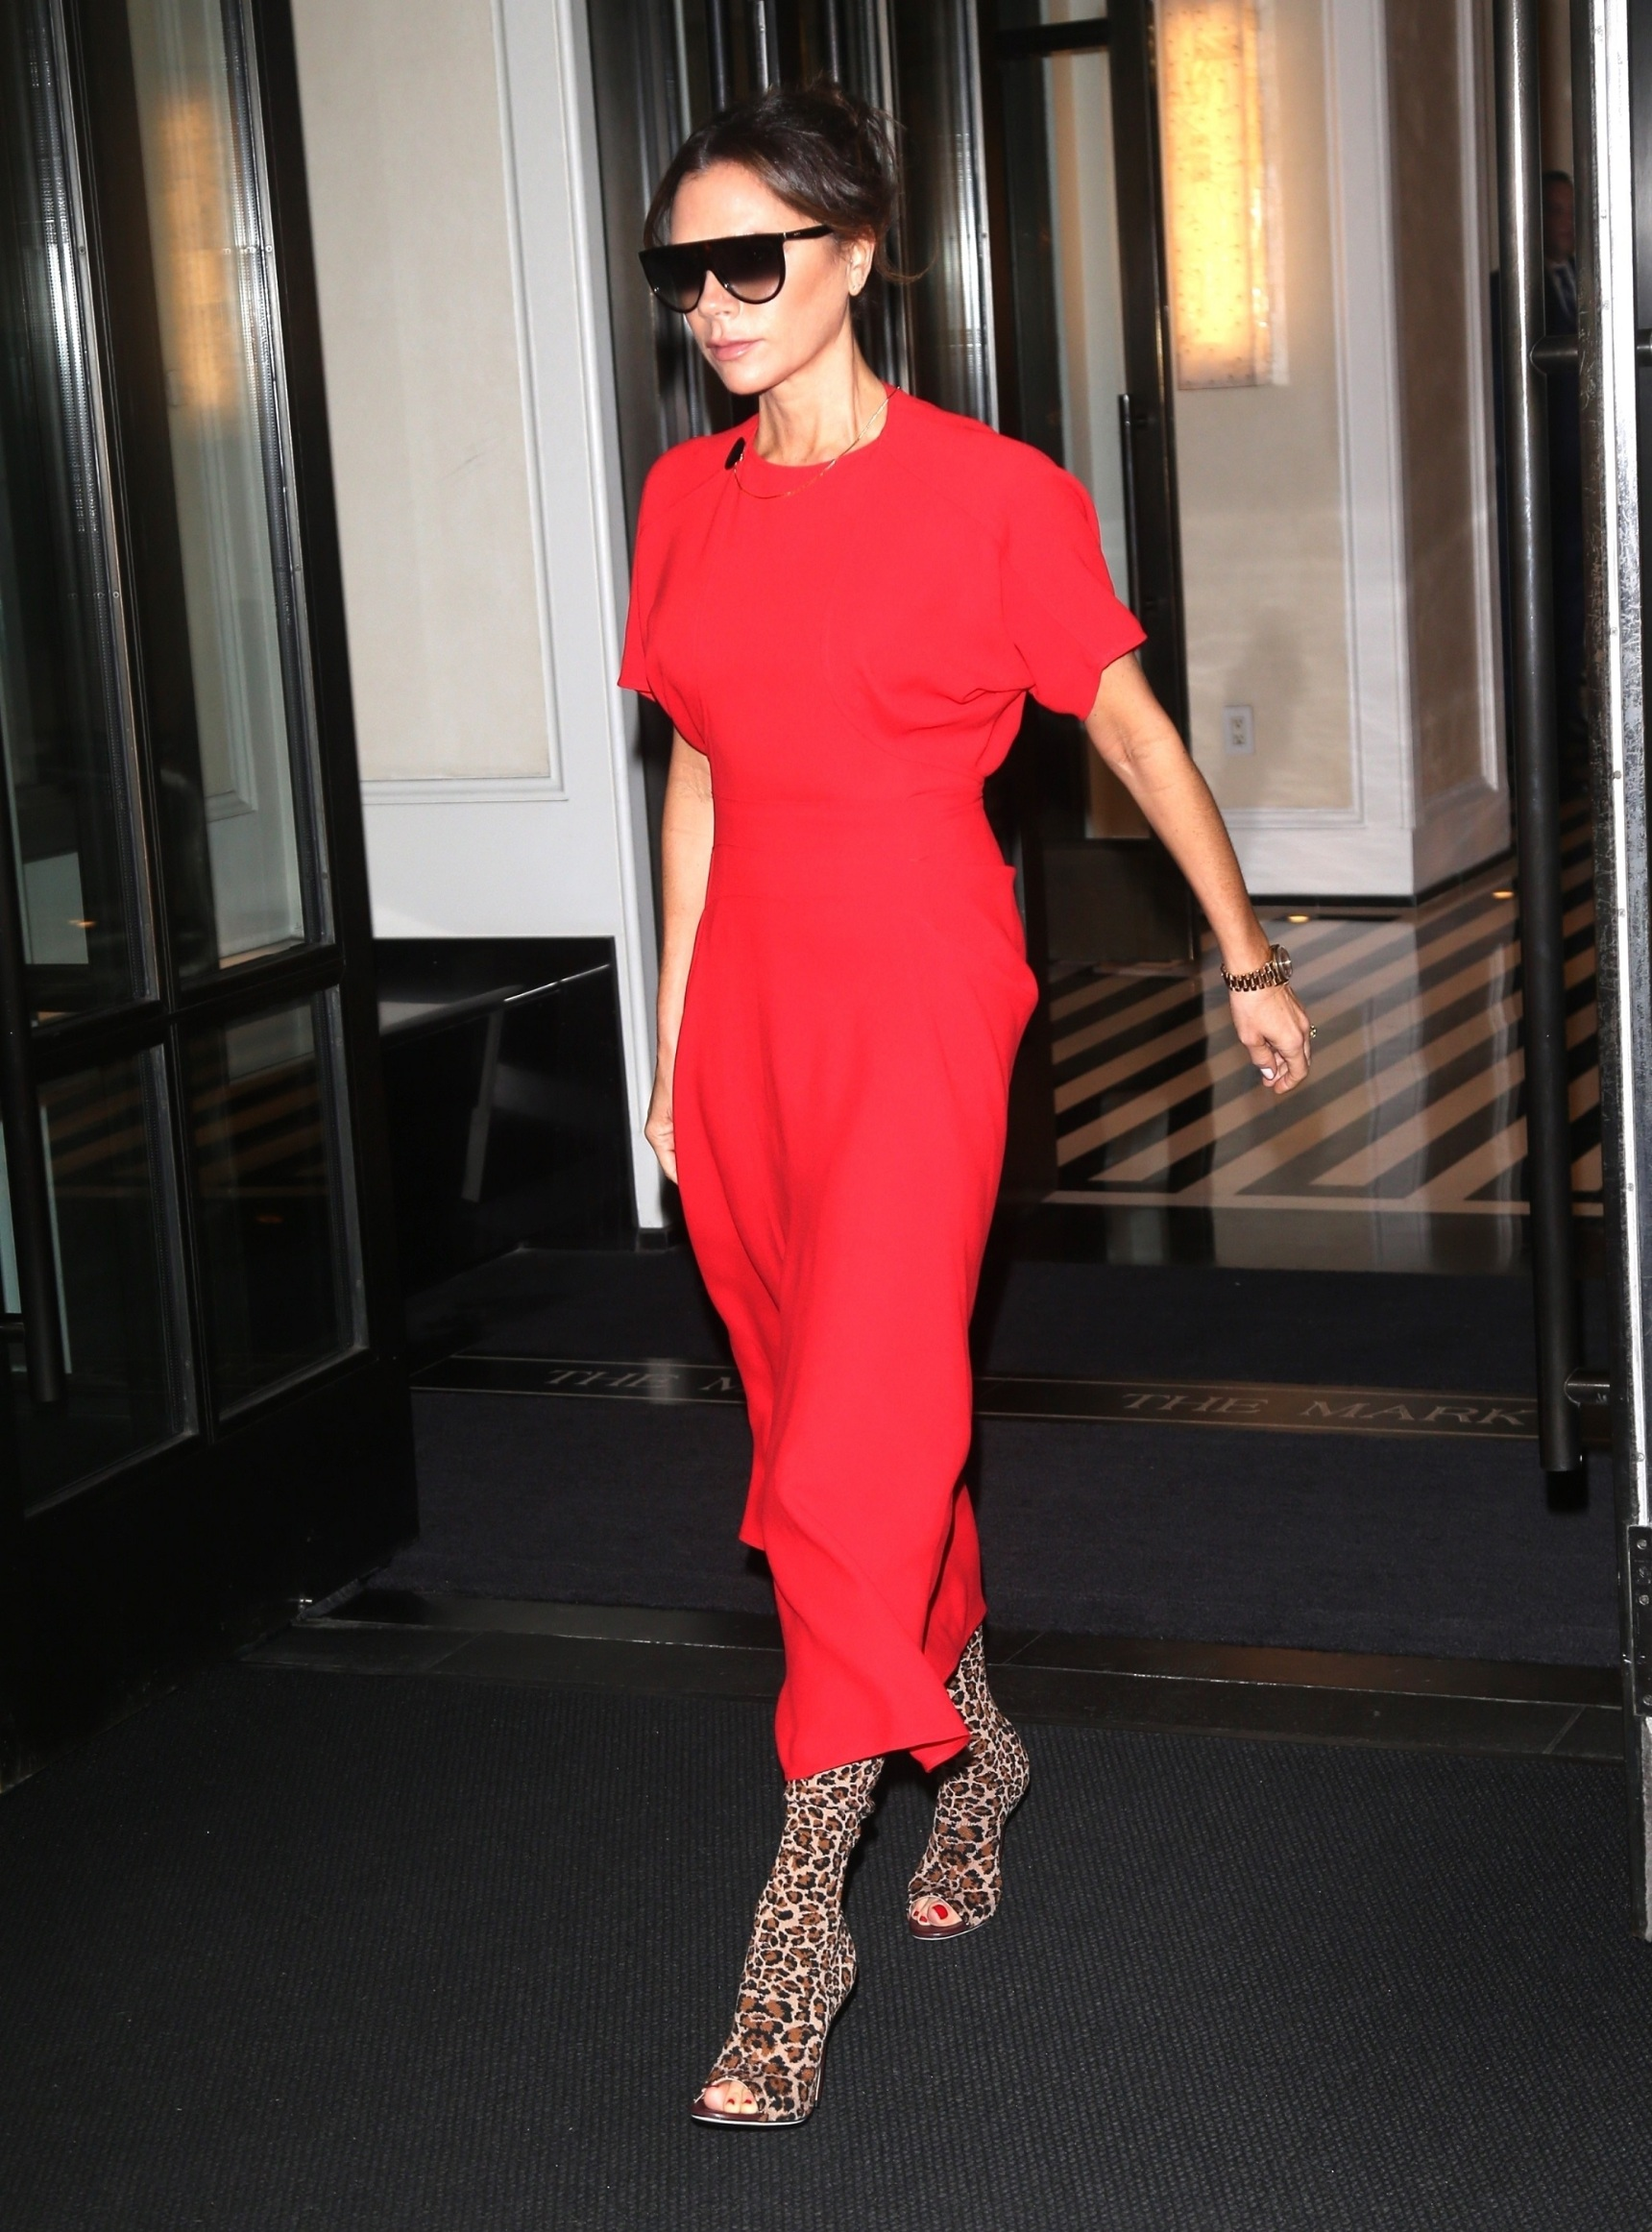 New York, NY  - Victoria Beckham is seen leaving her hotel after spending the previous day promoting her new makeup line.  *UK Clients - Pictures Containing Children Please Pixelate Face Prior To Publication*, Image: 477177234, License: Rights-managed, Restrictions: , Model Release: no, Credit line: DARA / BACKGRID / Backgrid USA / Profimedia